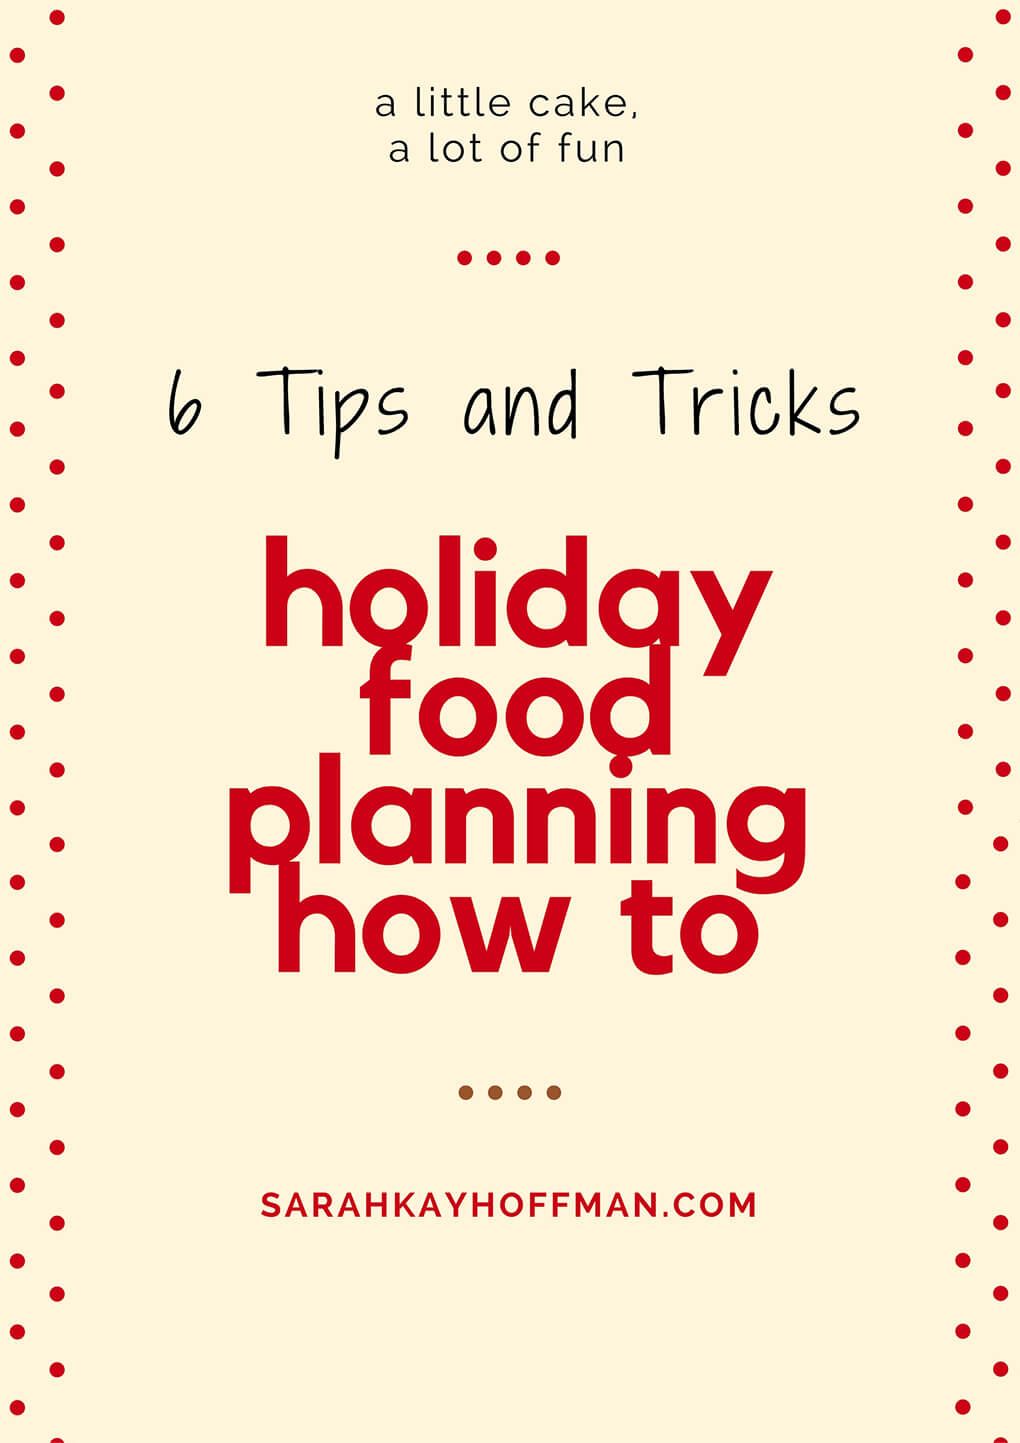 Holiday Food Planning How To sarahkayhoffman.com